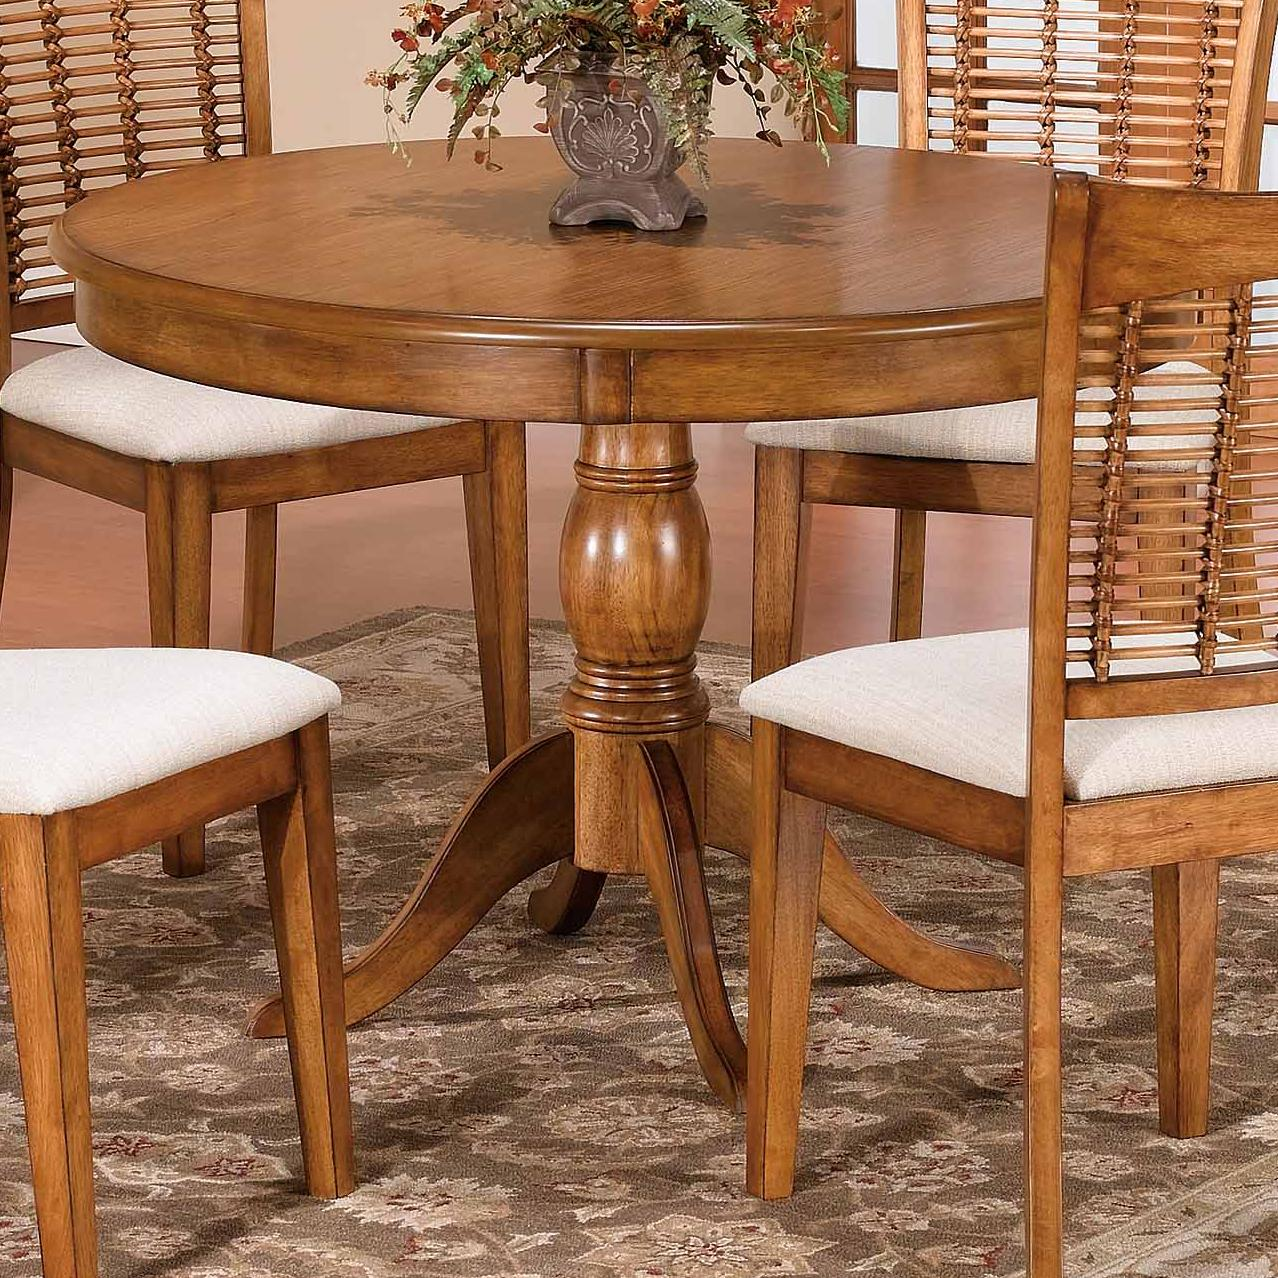 Hillsdale Bayberry and Glenmary Round Pedestal Table - Item Number: 4766DTB